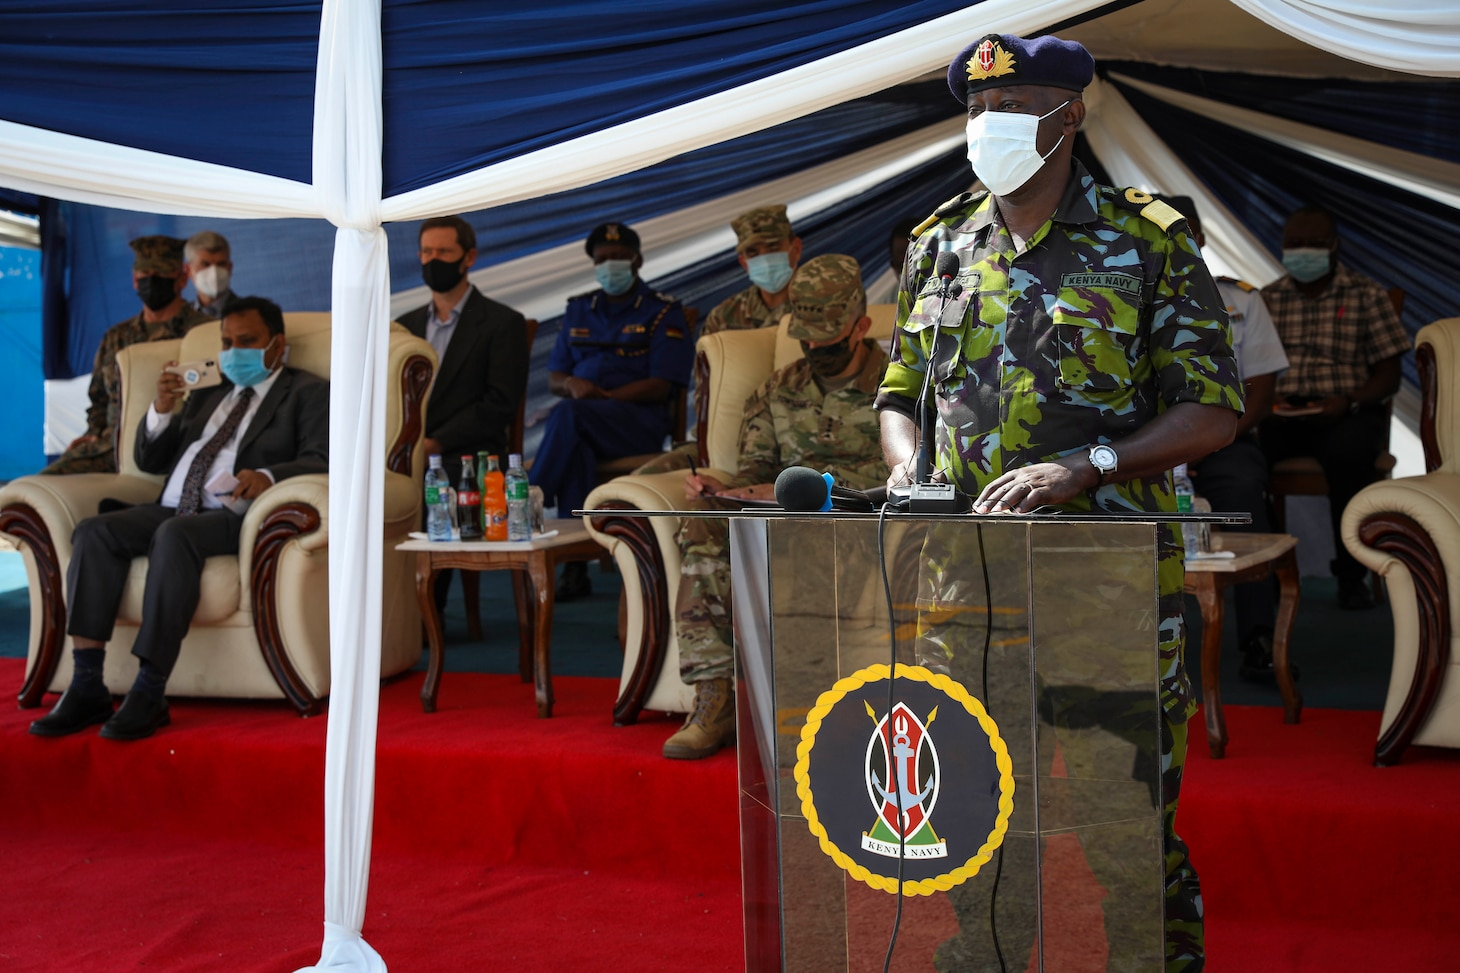 (July 26, 2021) Brig. Gen. Thomas N. Nganga, Commander, Kenya Naval Base Mtongwe, delivers remarks during the opening ceremony of exercise Cutlass Express 2021 held at the Bandari Maritime Academy in Mombasa, Kenya, July 26, 2021. Cutlass Express is designed to improve regional cooperation, maritime domain awareness and information sharing practices to increase capabilities between the U.S., East African and Western Indian Ocean nations to counter illicit maritime activity. (U.S. Navy Photo by Mass Communication Specialist 1st Class Frederick Gray)